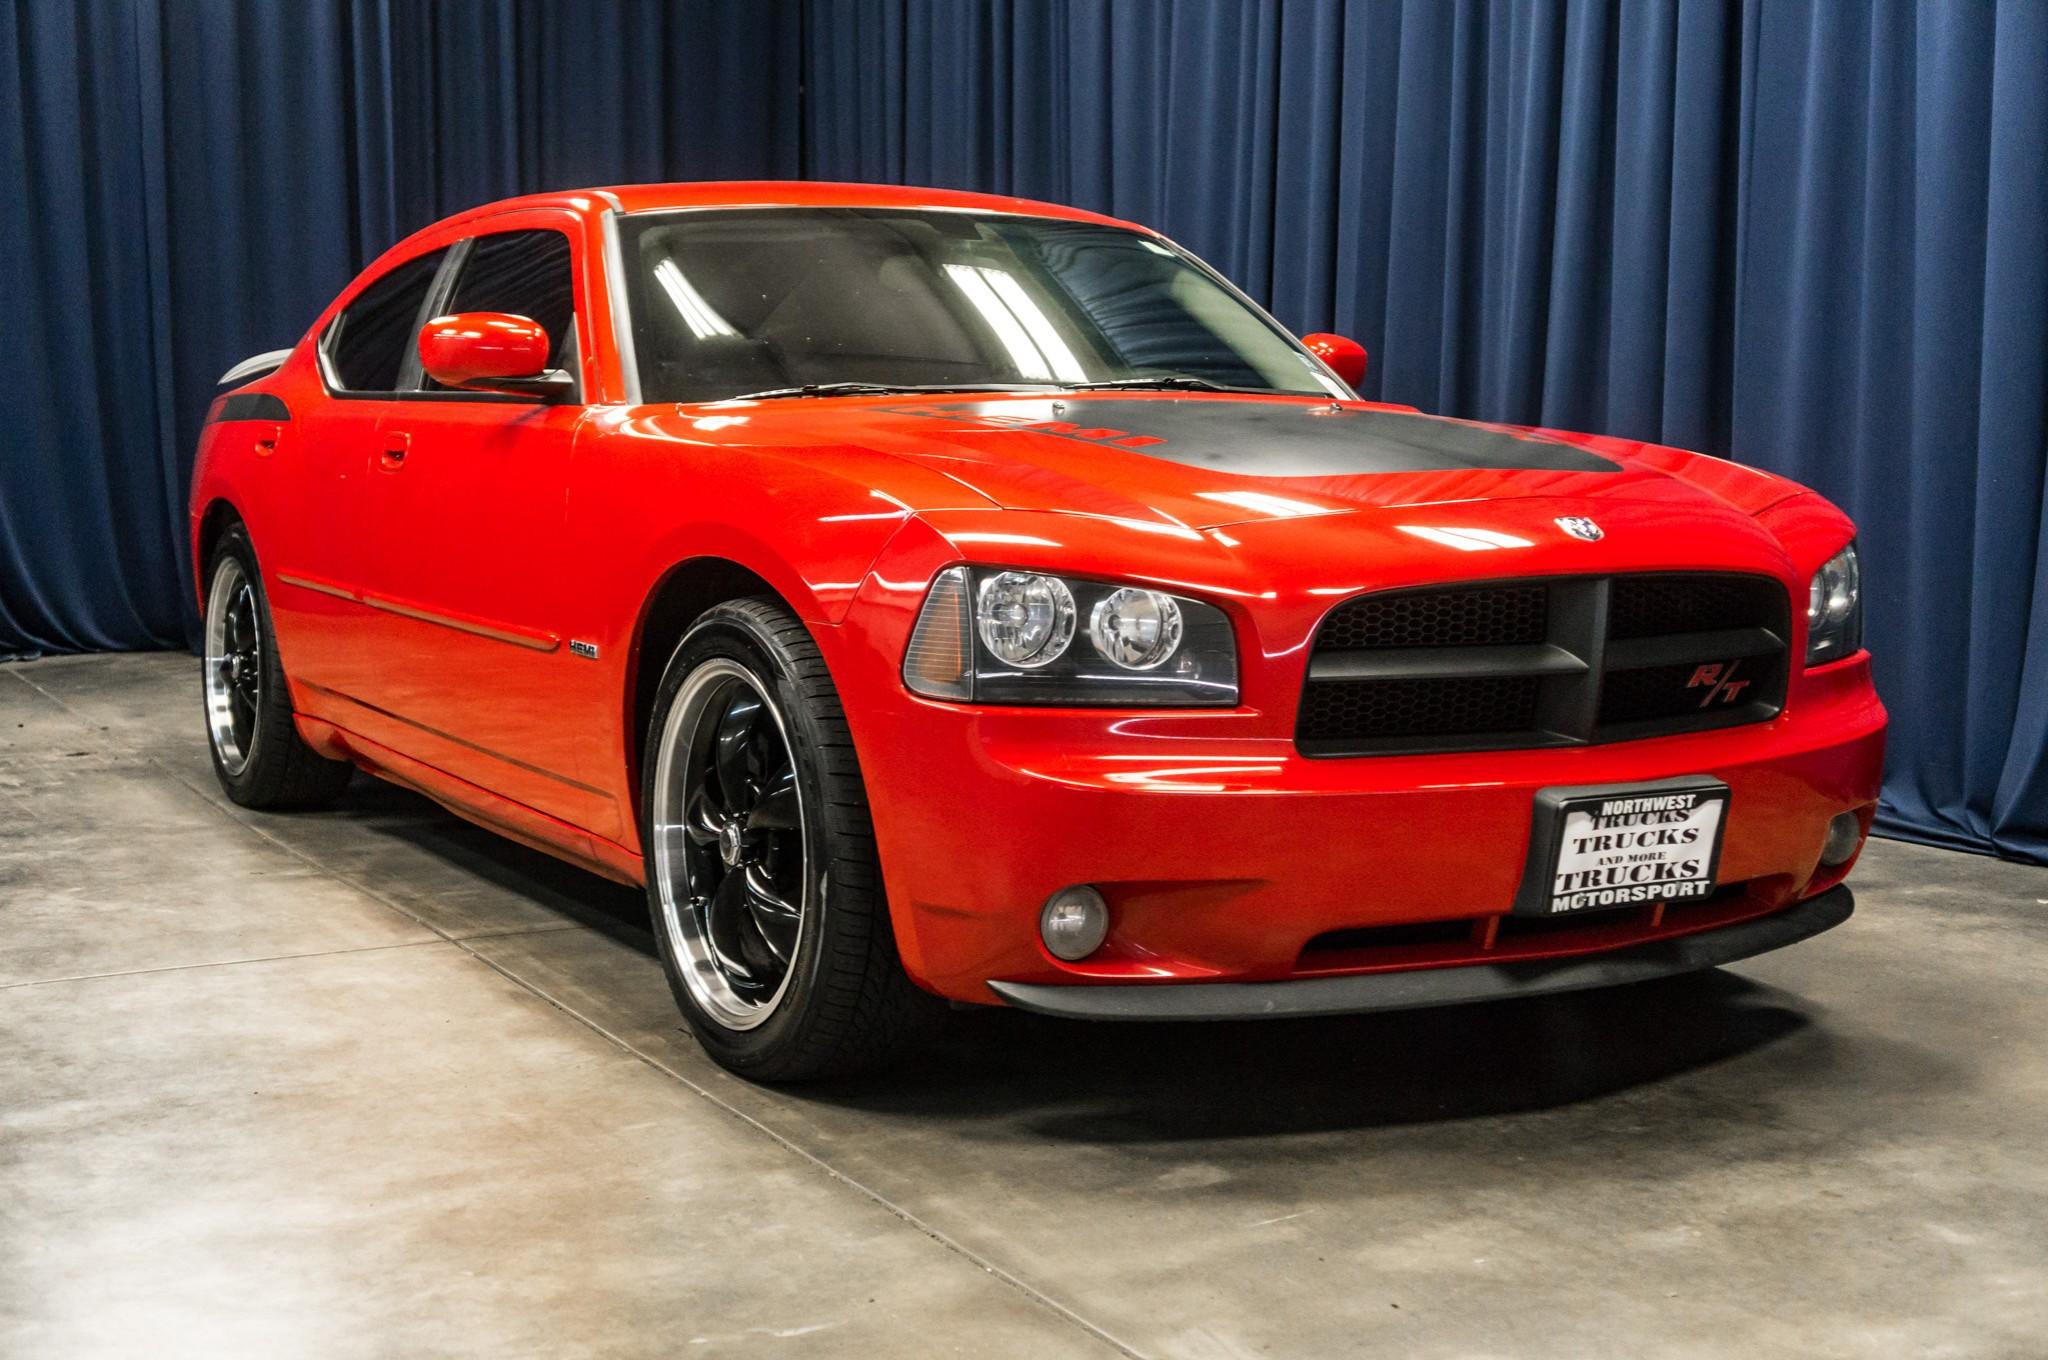 mods l sale htm dodge options stock used new charger no srt like for all c